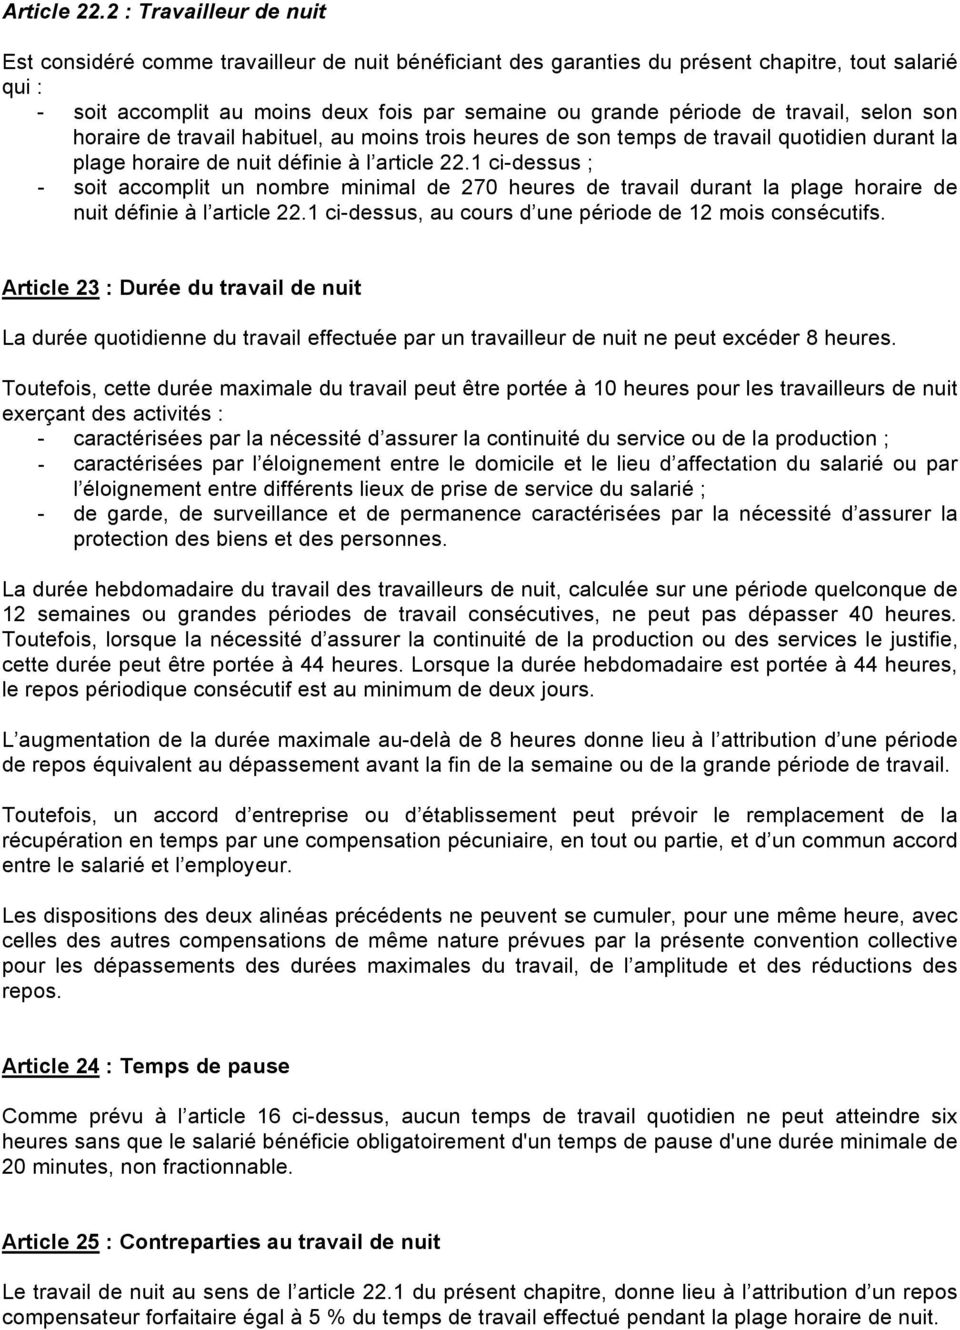 Accord De Branche Relatif A L Organisation Et A L Amenagement Du